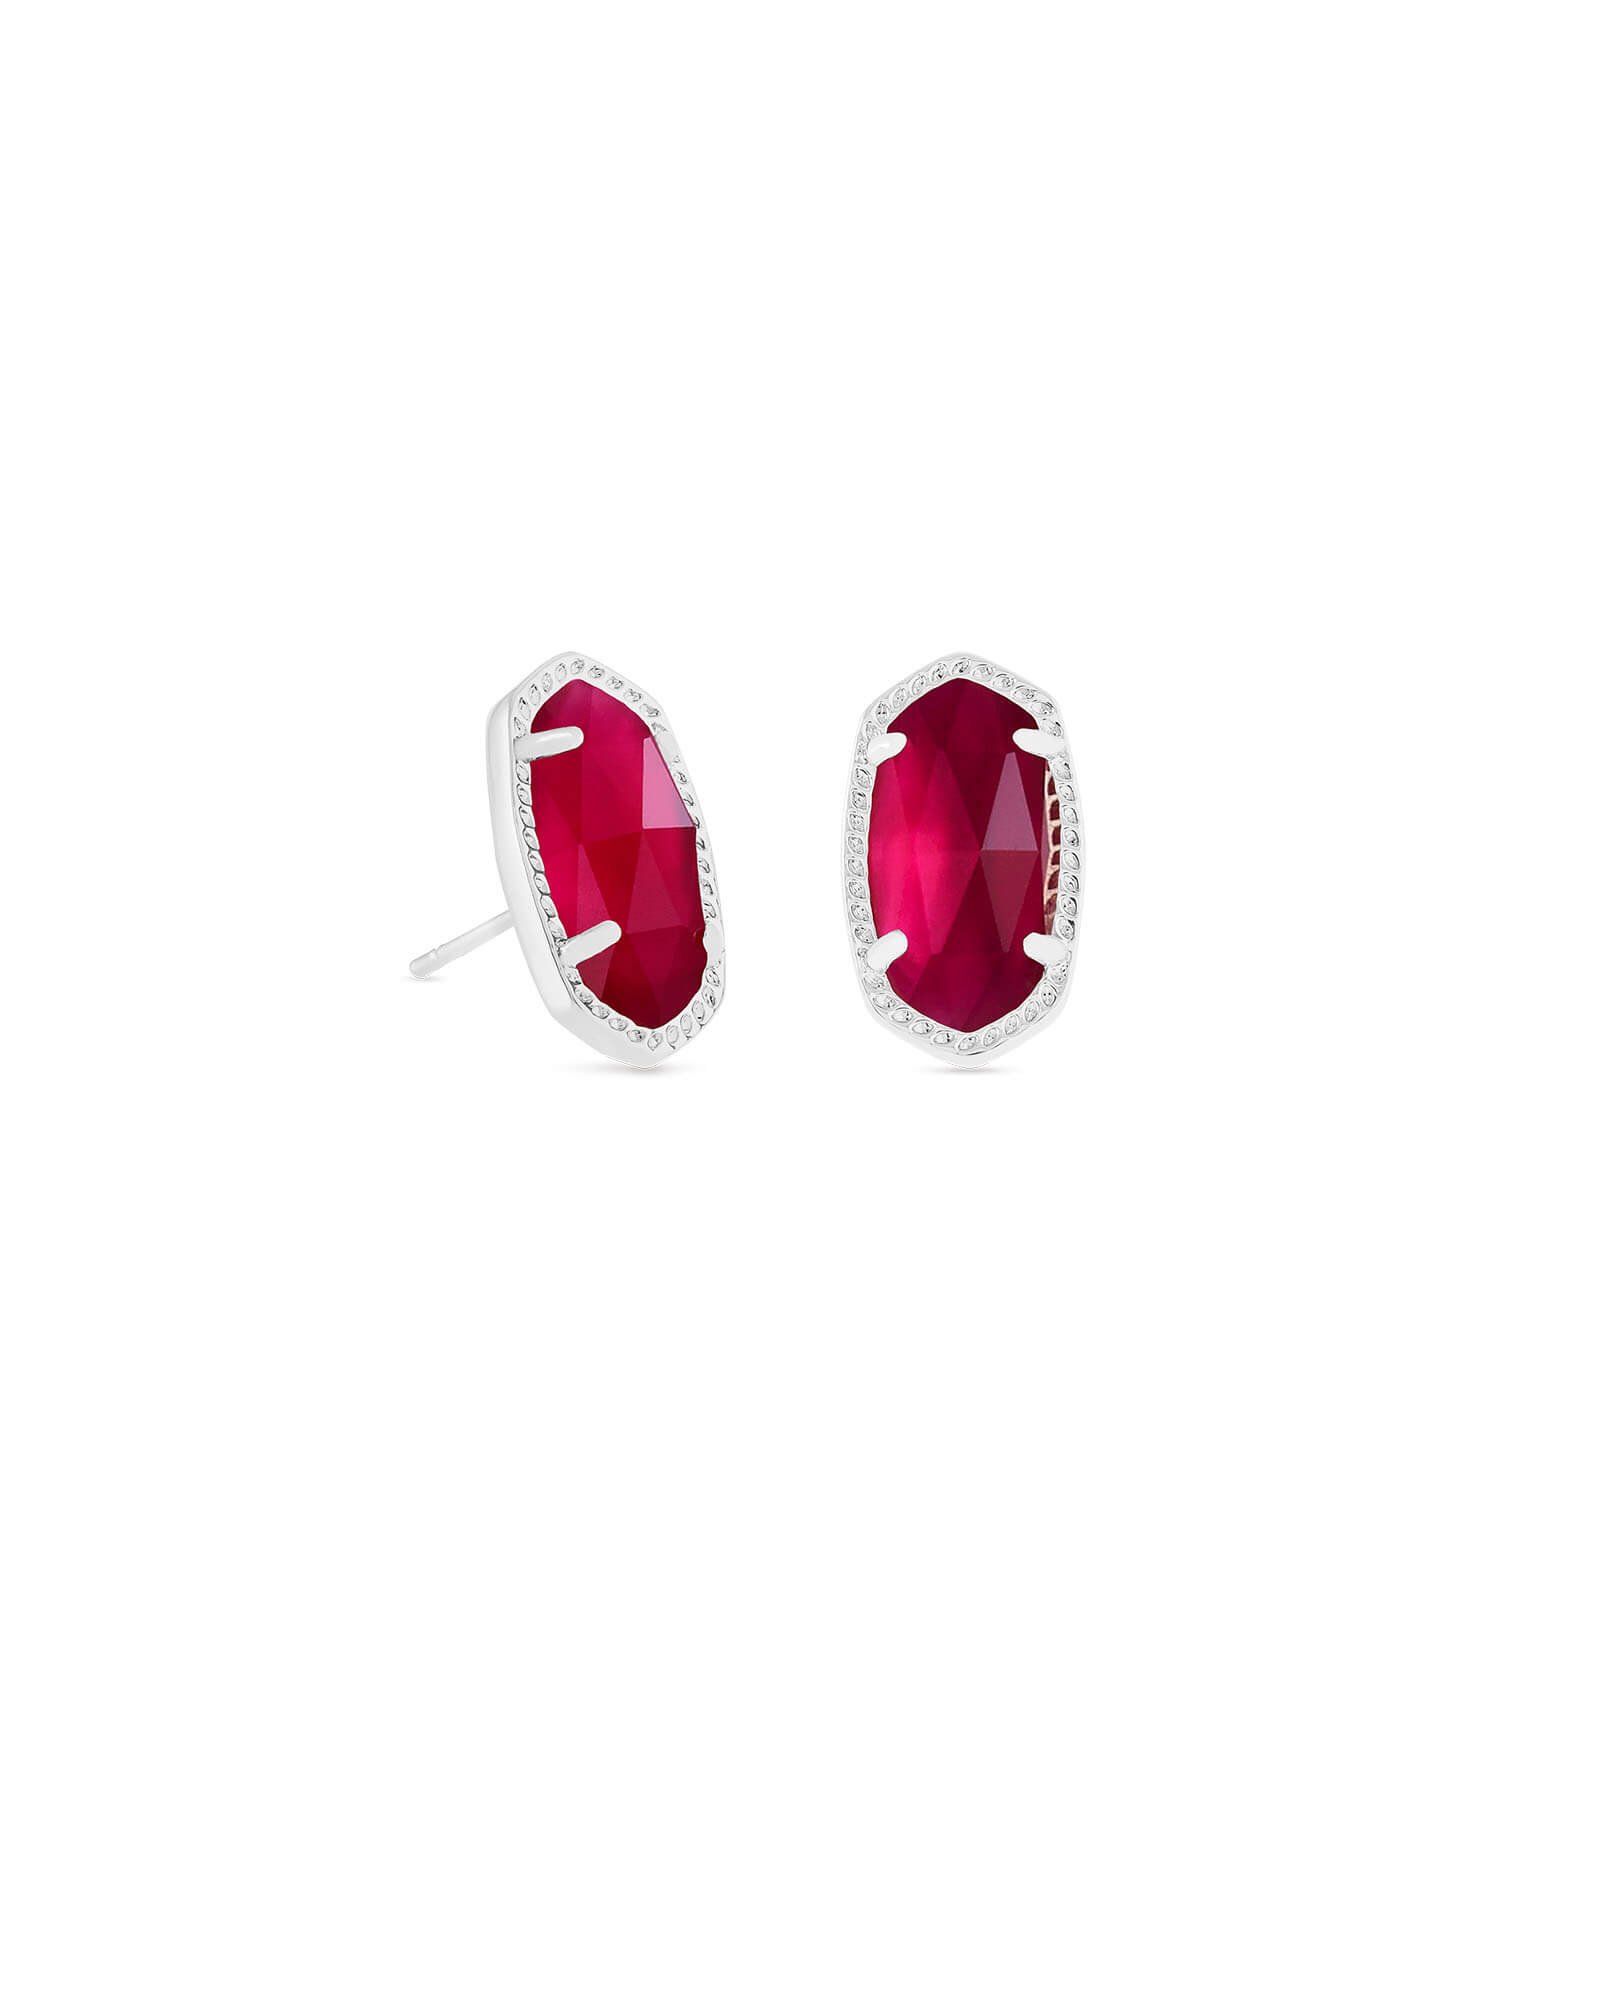 Ellie Silver Stud Earrings in Berry Illusion